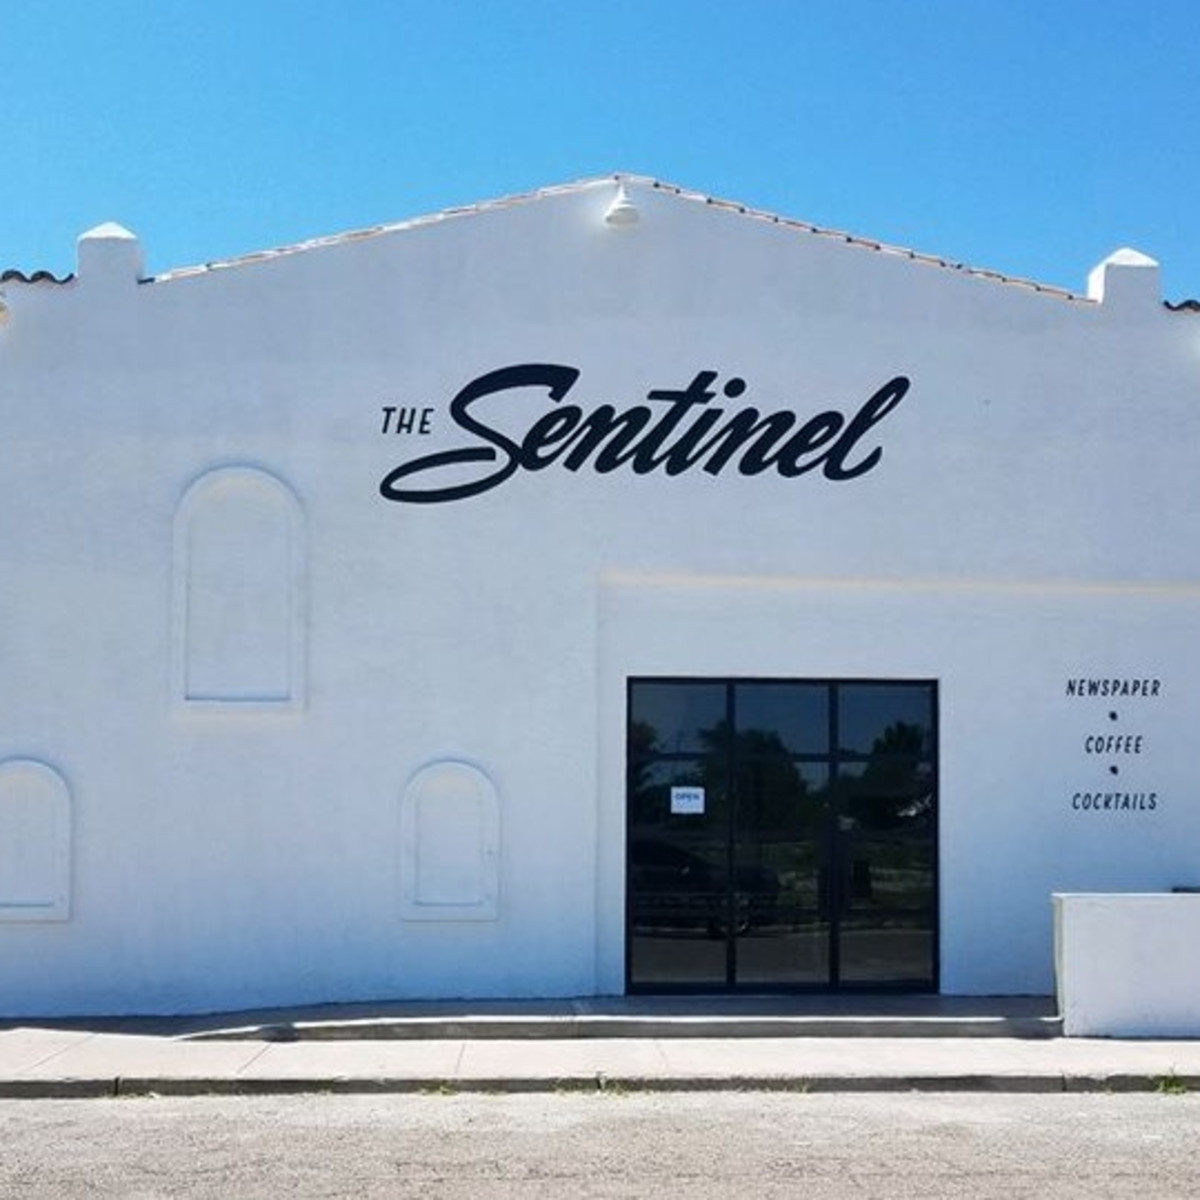 The Sentinel Marfa